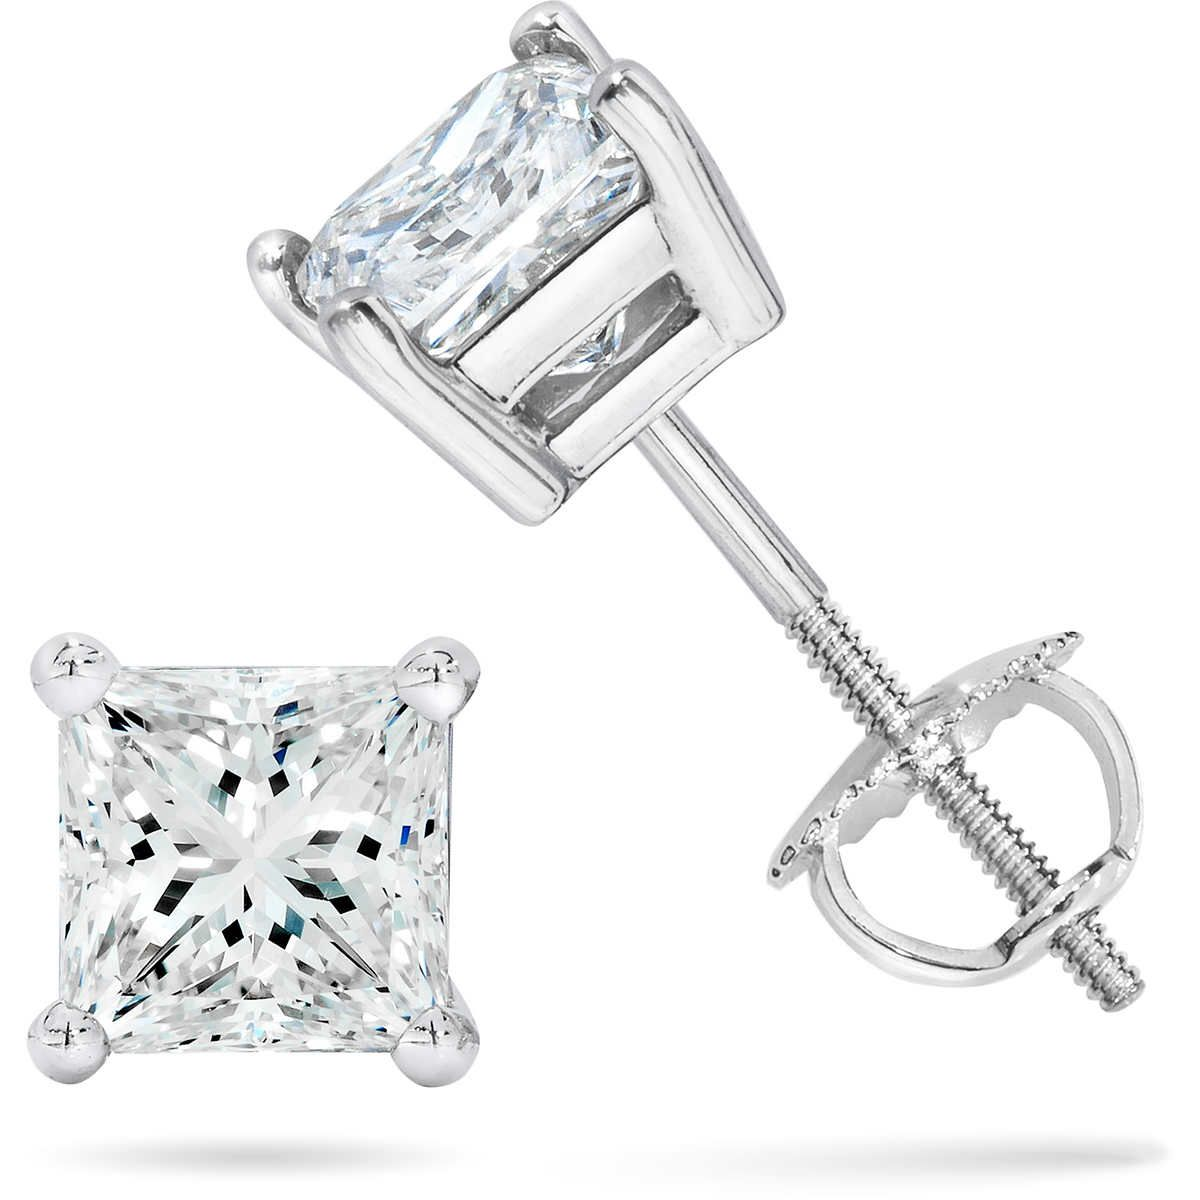 stud jared hover jar earrings mv en ct zm to tw diamond princess cut zoom solitaire white gold carat jaredstore